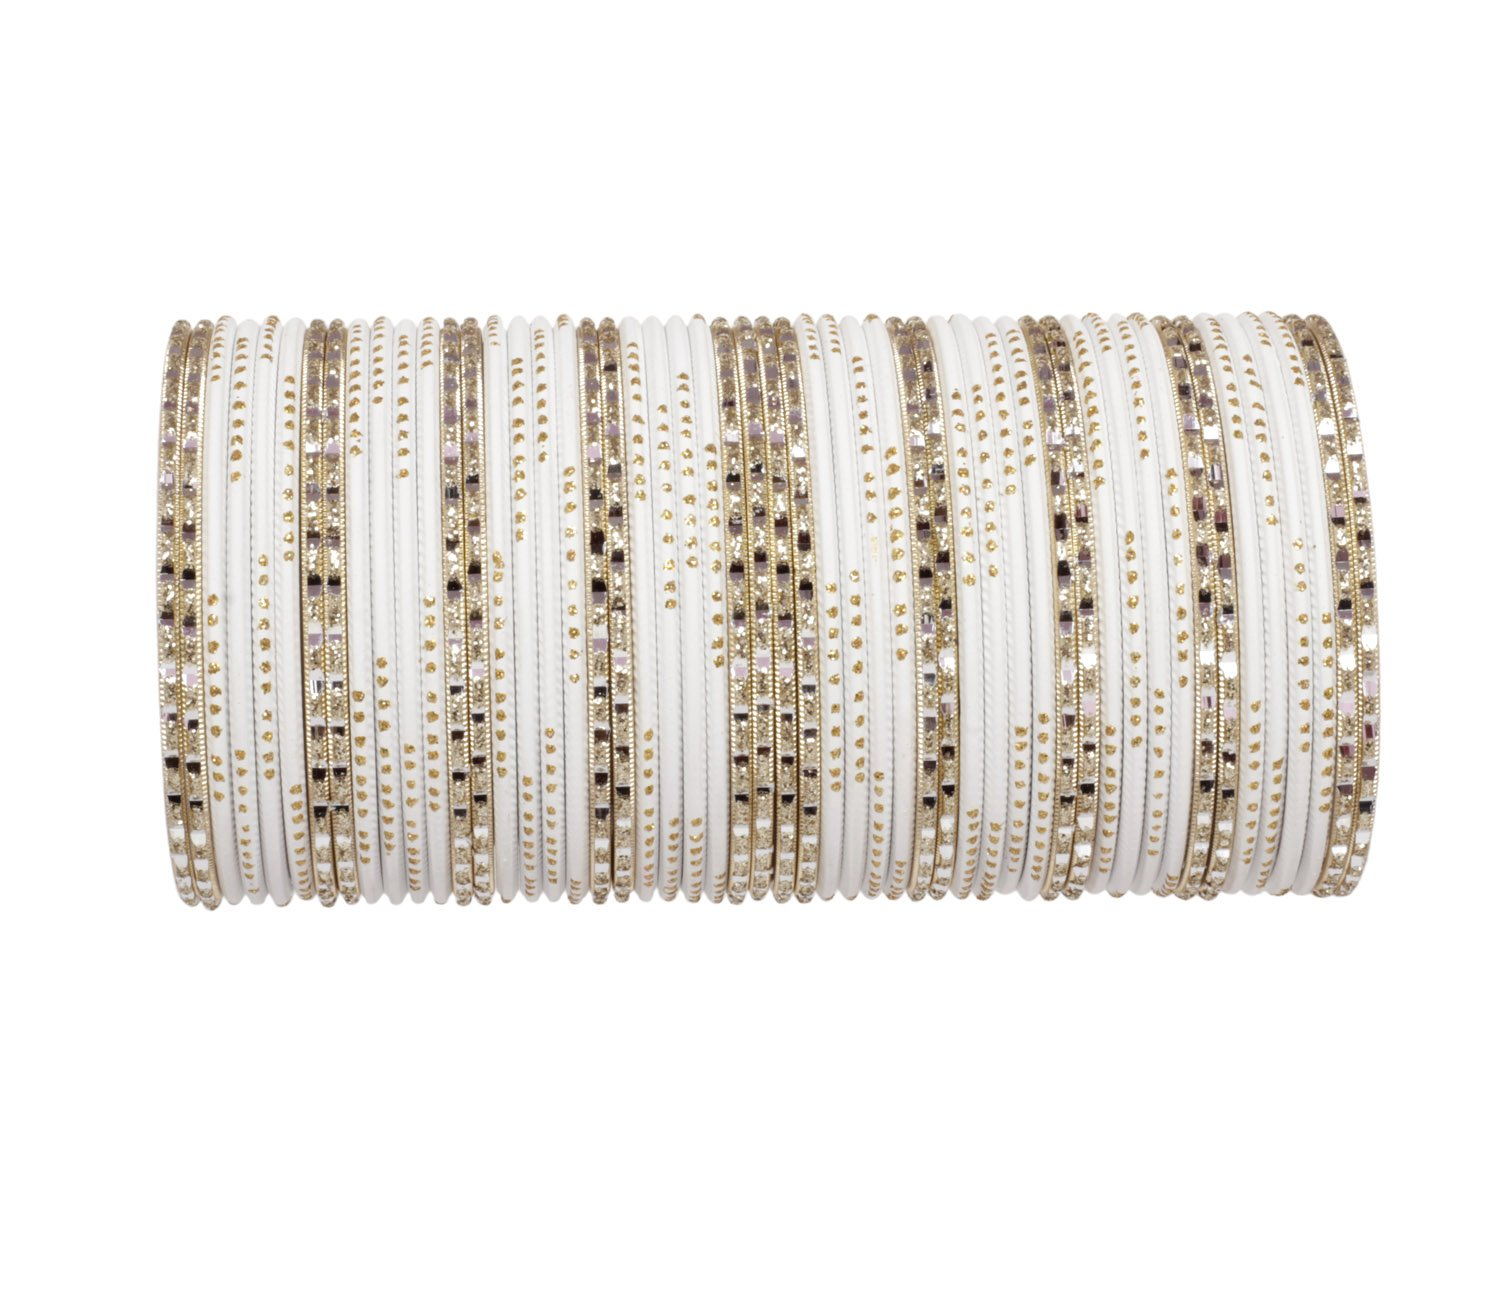 Ratna Traditional White color Golden bangle set made Beautiful Bride Wedding wear Ethnic bangles (2.6)